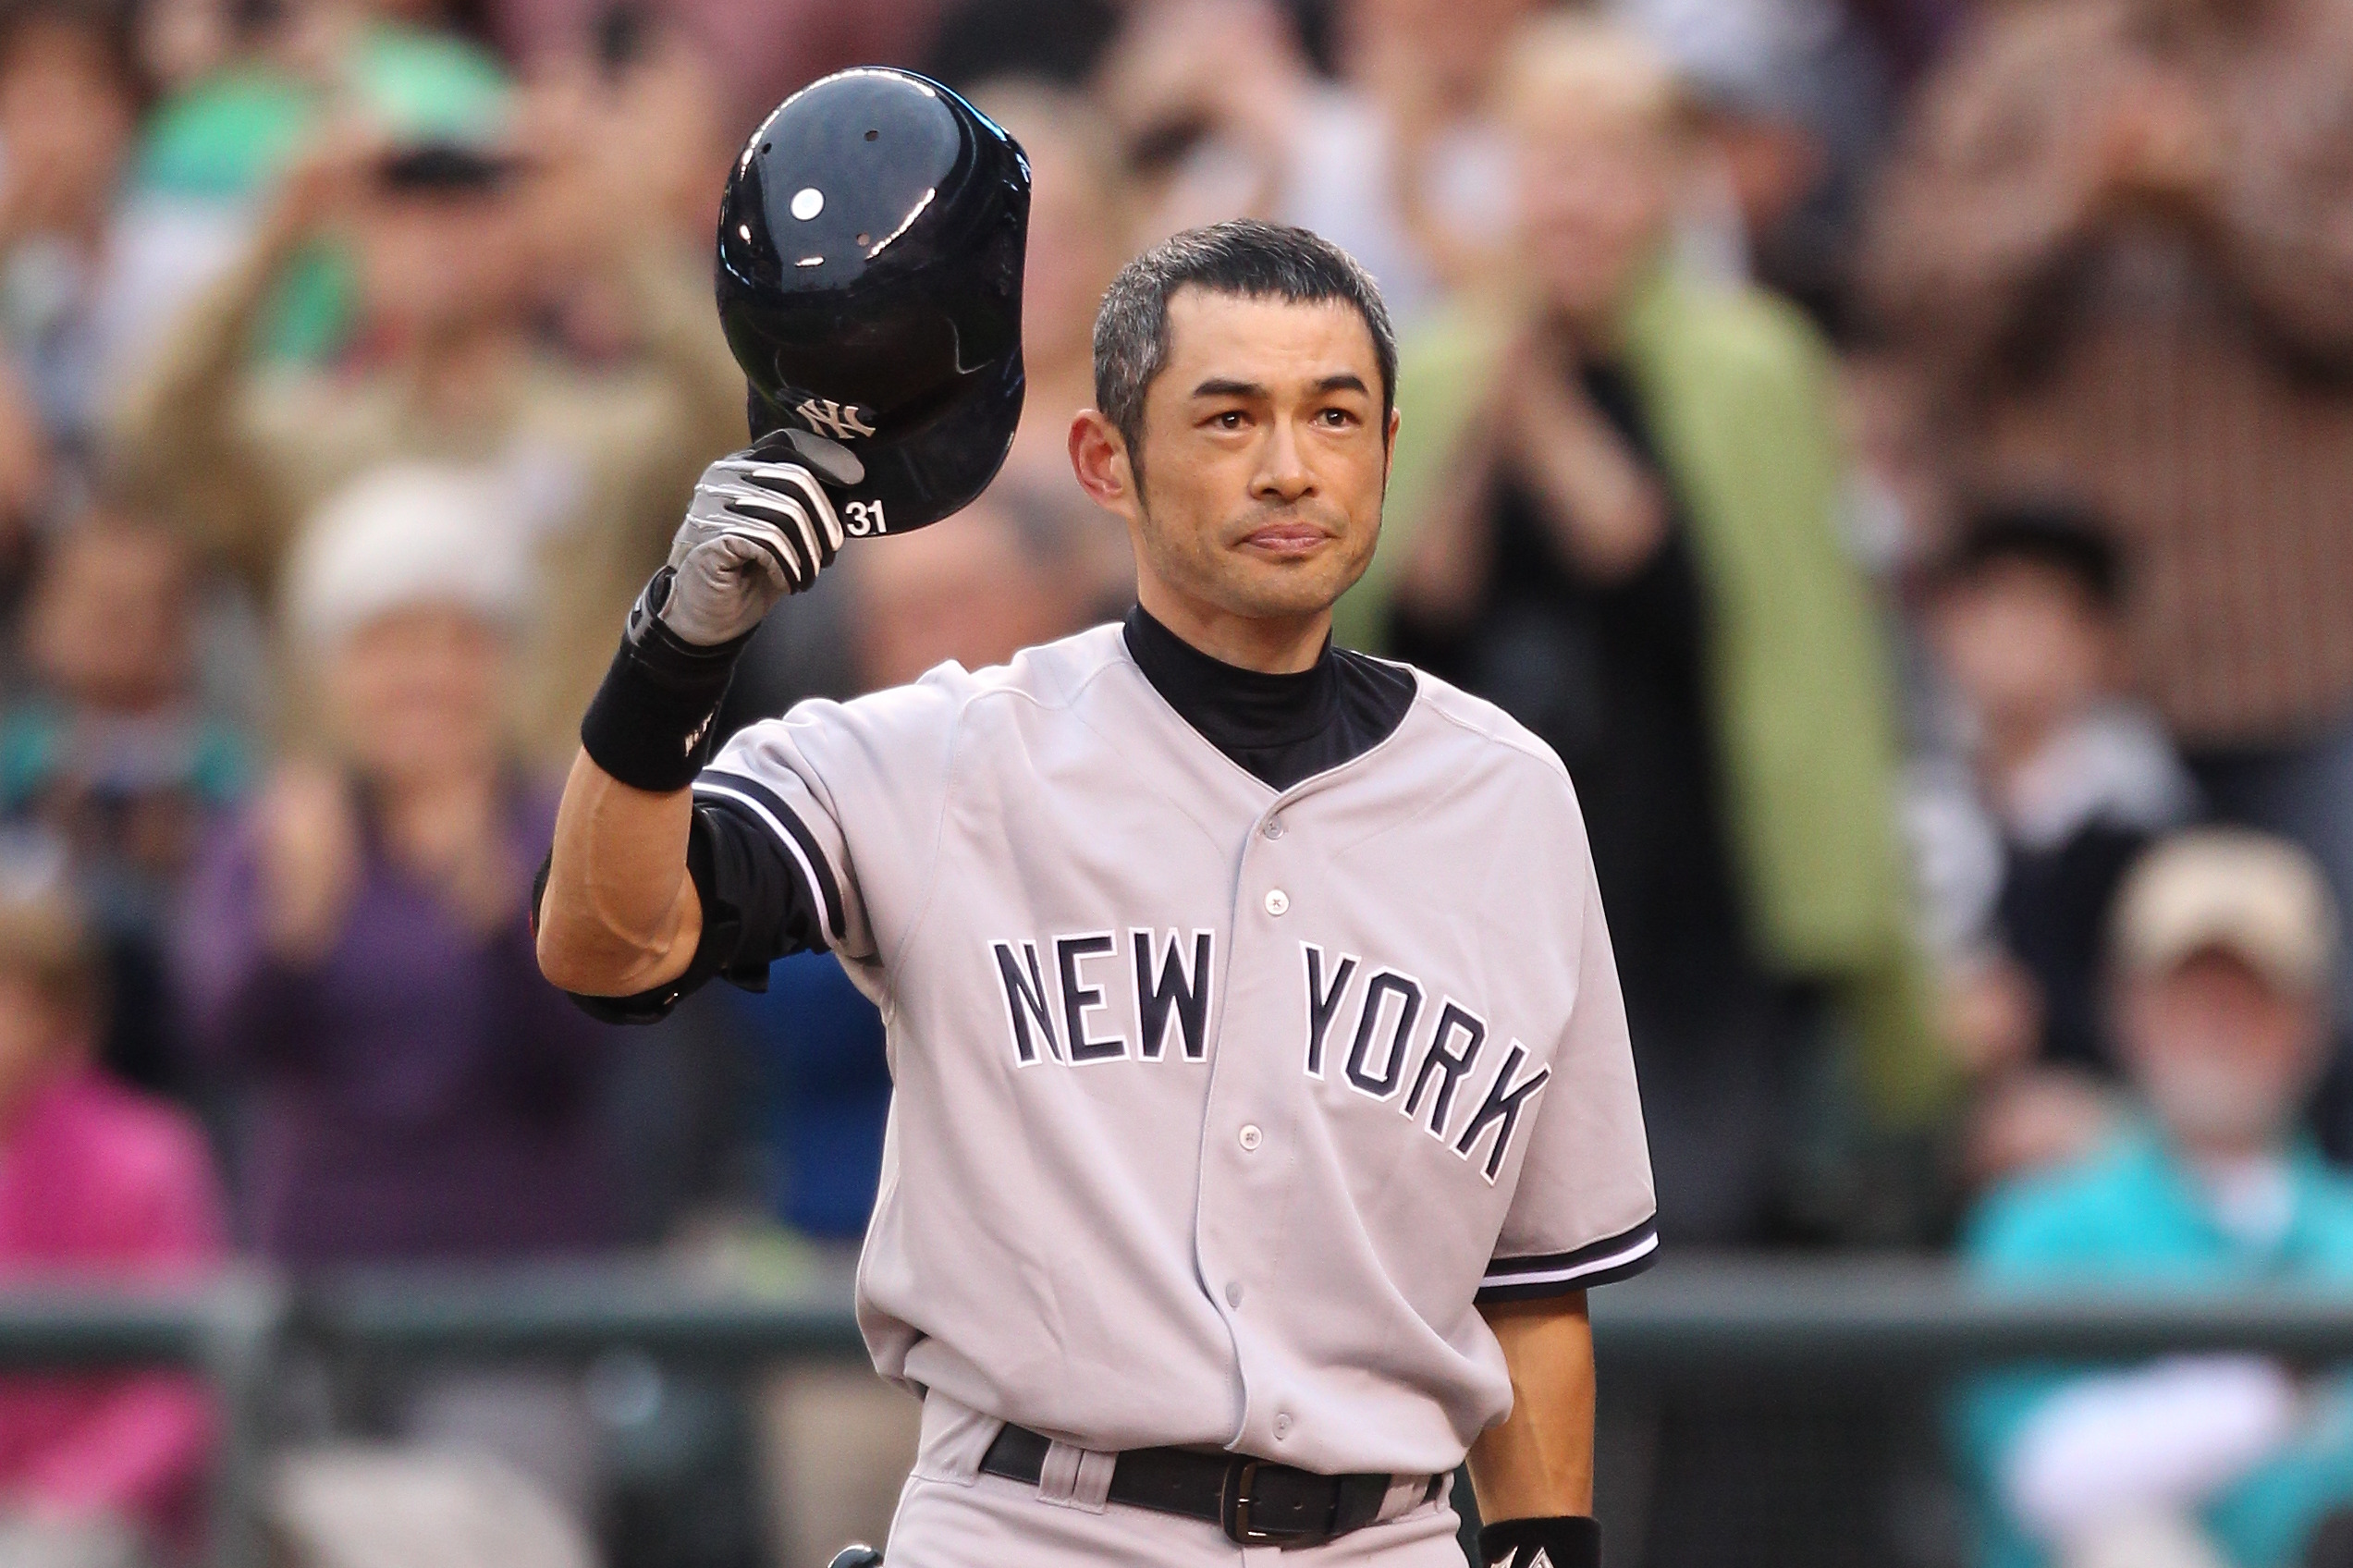 Ichiro: We recognize his name, his fame and his amazing achievements.